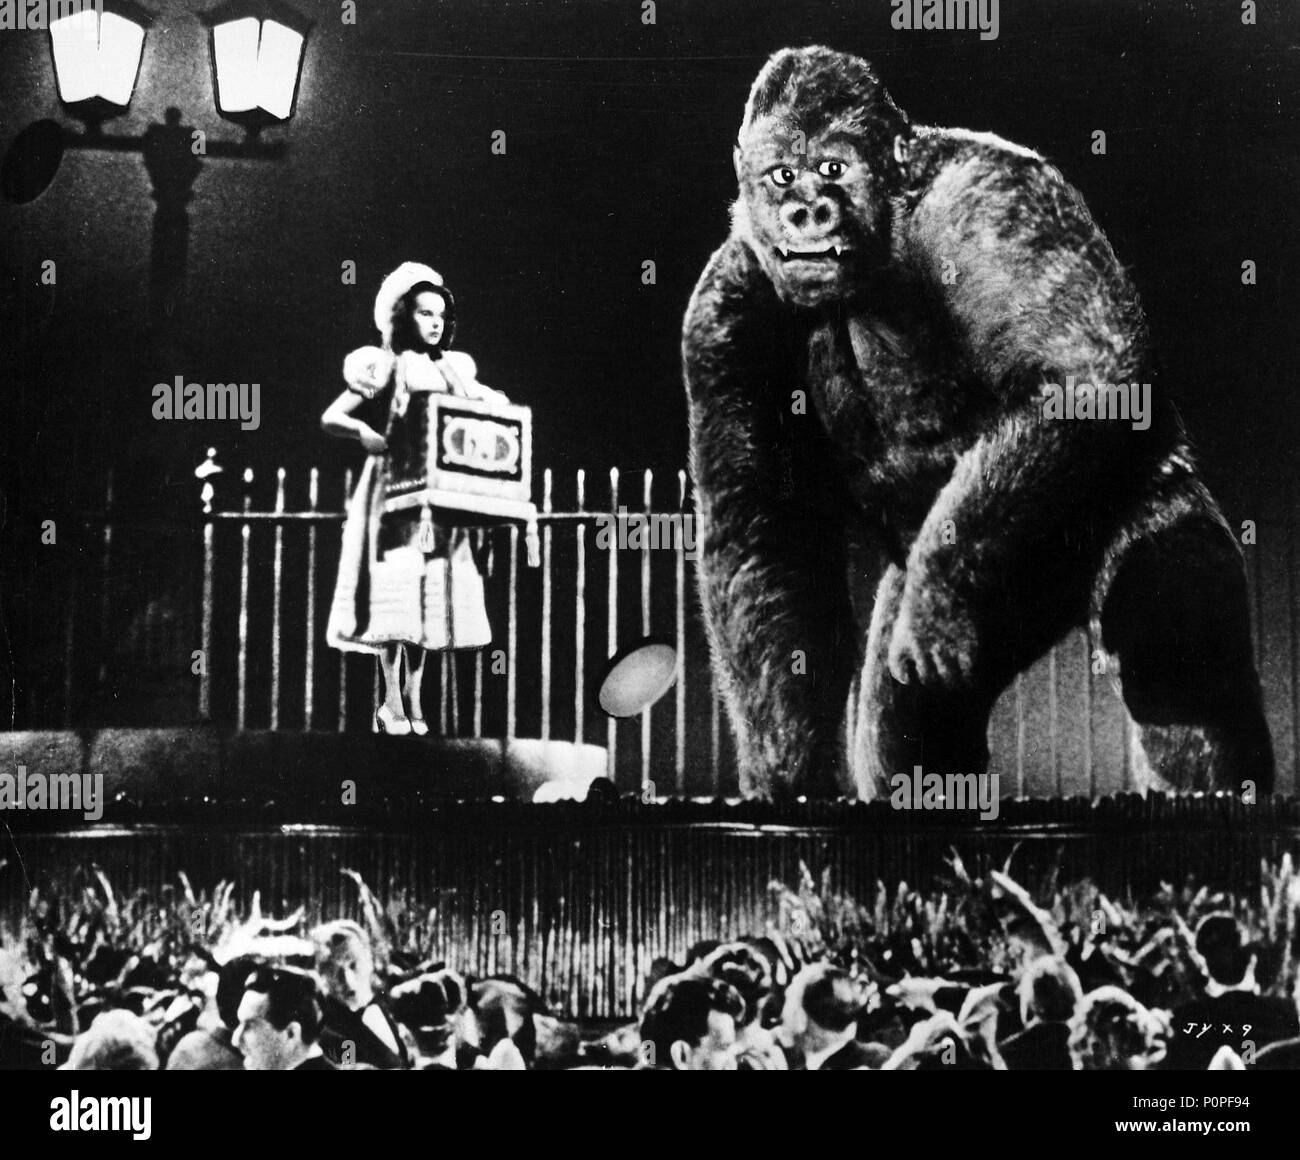 Original Film Title: MIGHTY JOE YOUNG.  English Title: MIGHTY JOE YOUNG.  Film Director: ERNEST B. SCHOEDSACK.  Year: 1949. Credit: RKO / Album - Stock Image